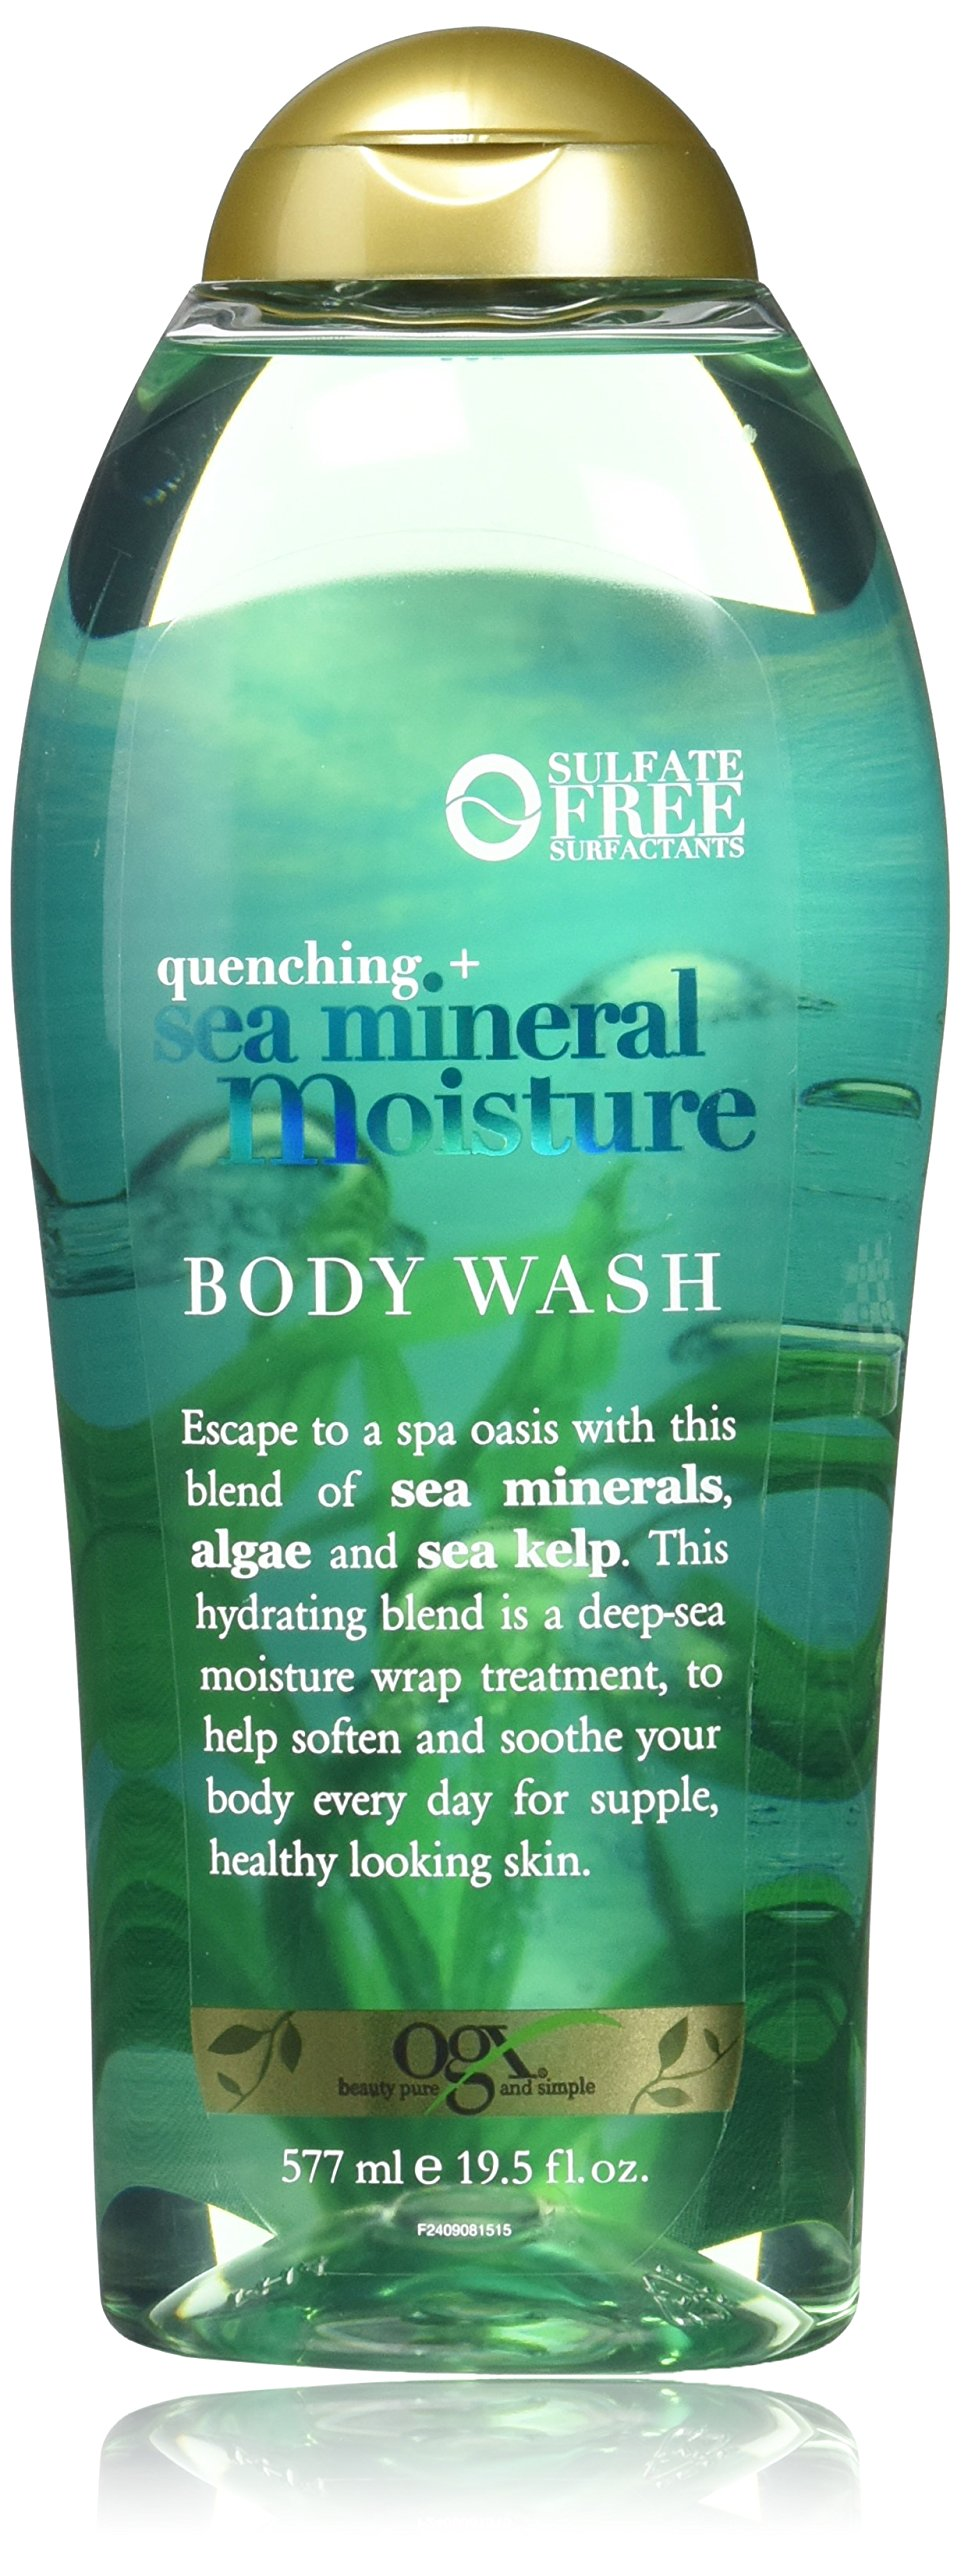 OGX Quenching + Sea Mineral Moisture Body Wash, 19.5 Ounce